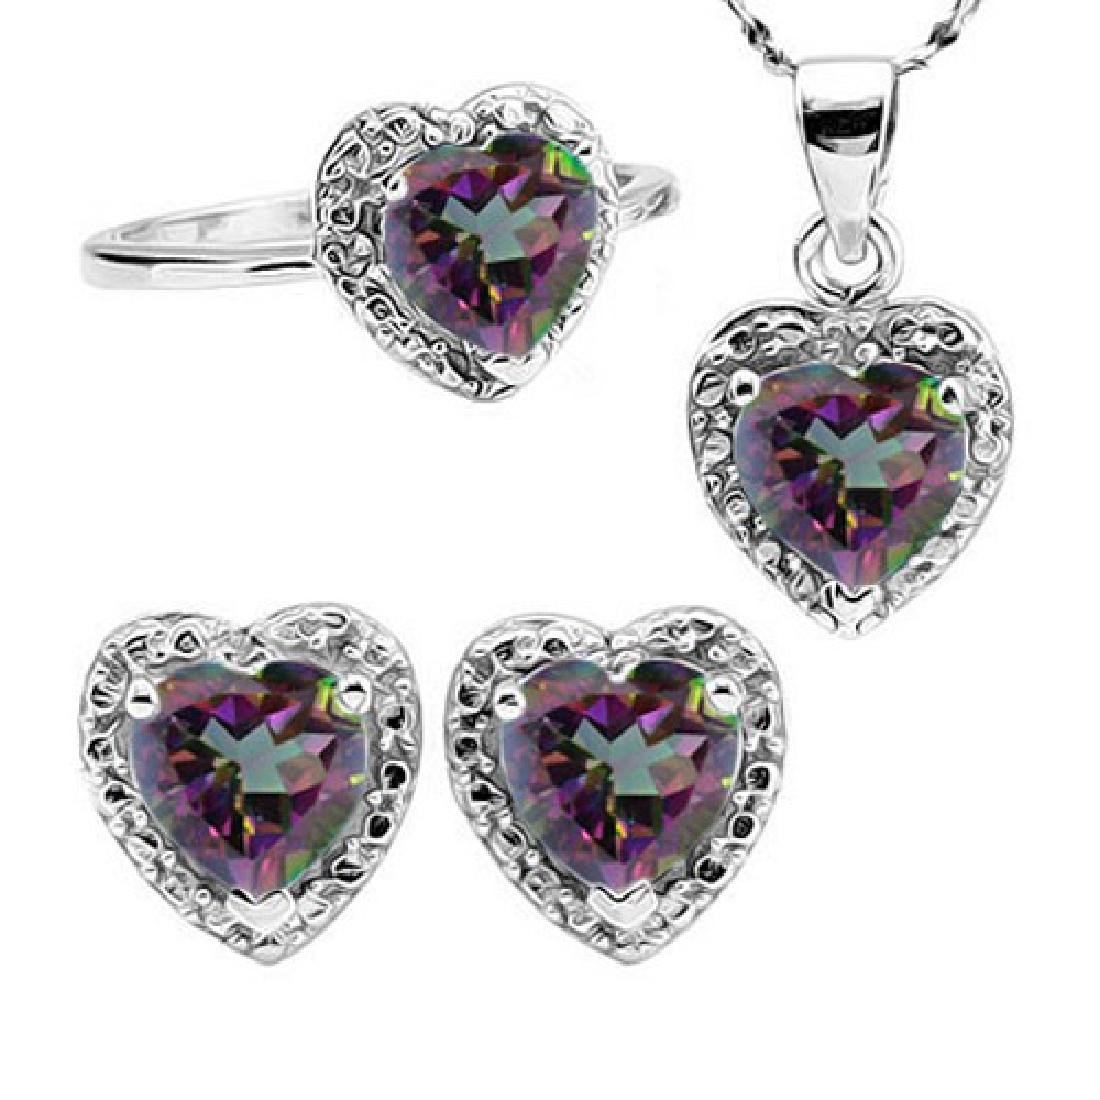 Heart Cut Mystic Topaz and Diamond Ring Earring and